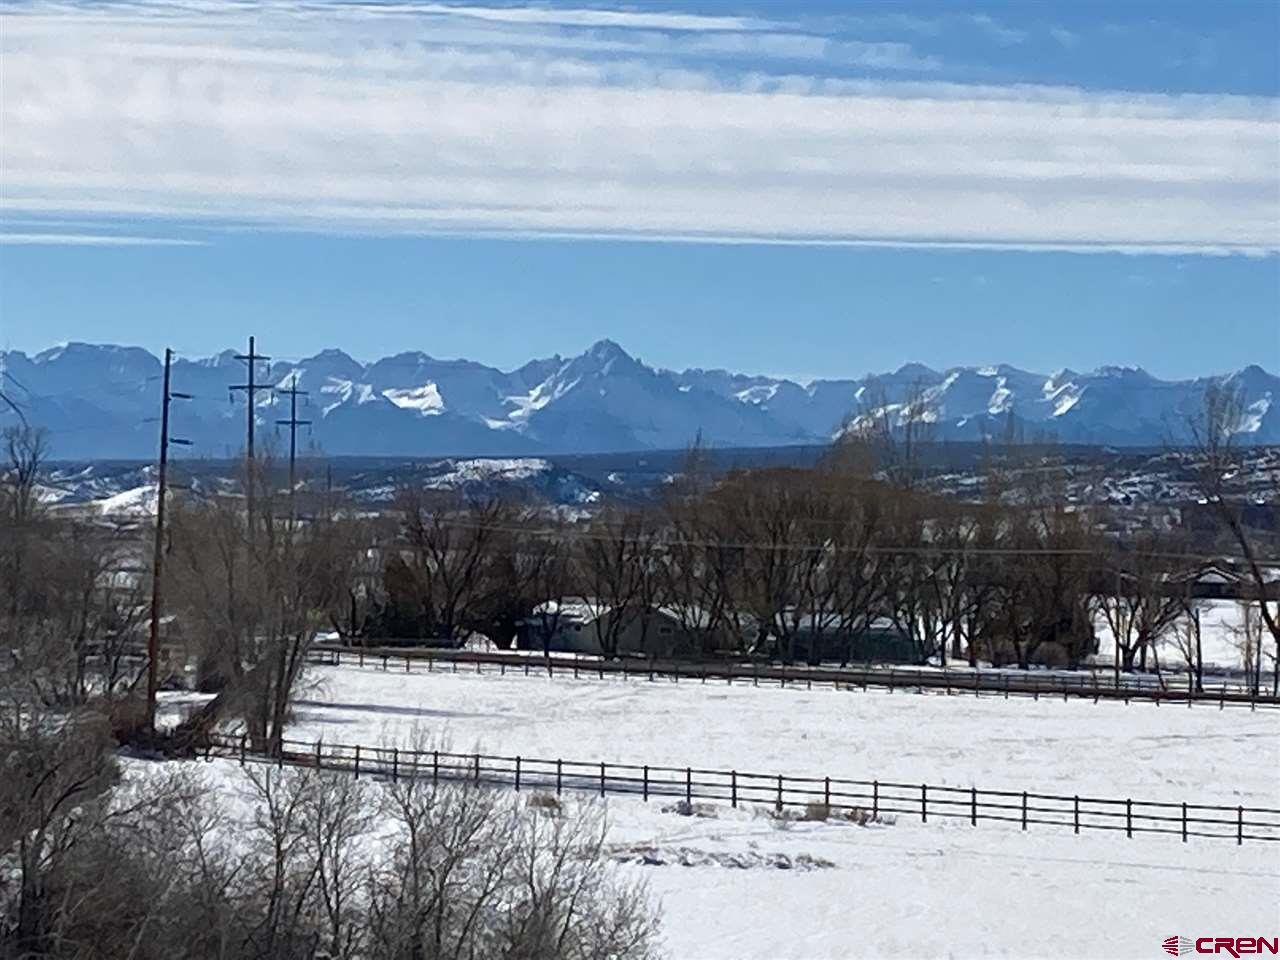 16550 6475 Road, Montrose, Colorado 81403, ,Lots And Land,For Sale,16550 6475 Road,776797